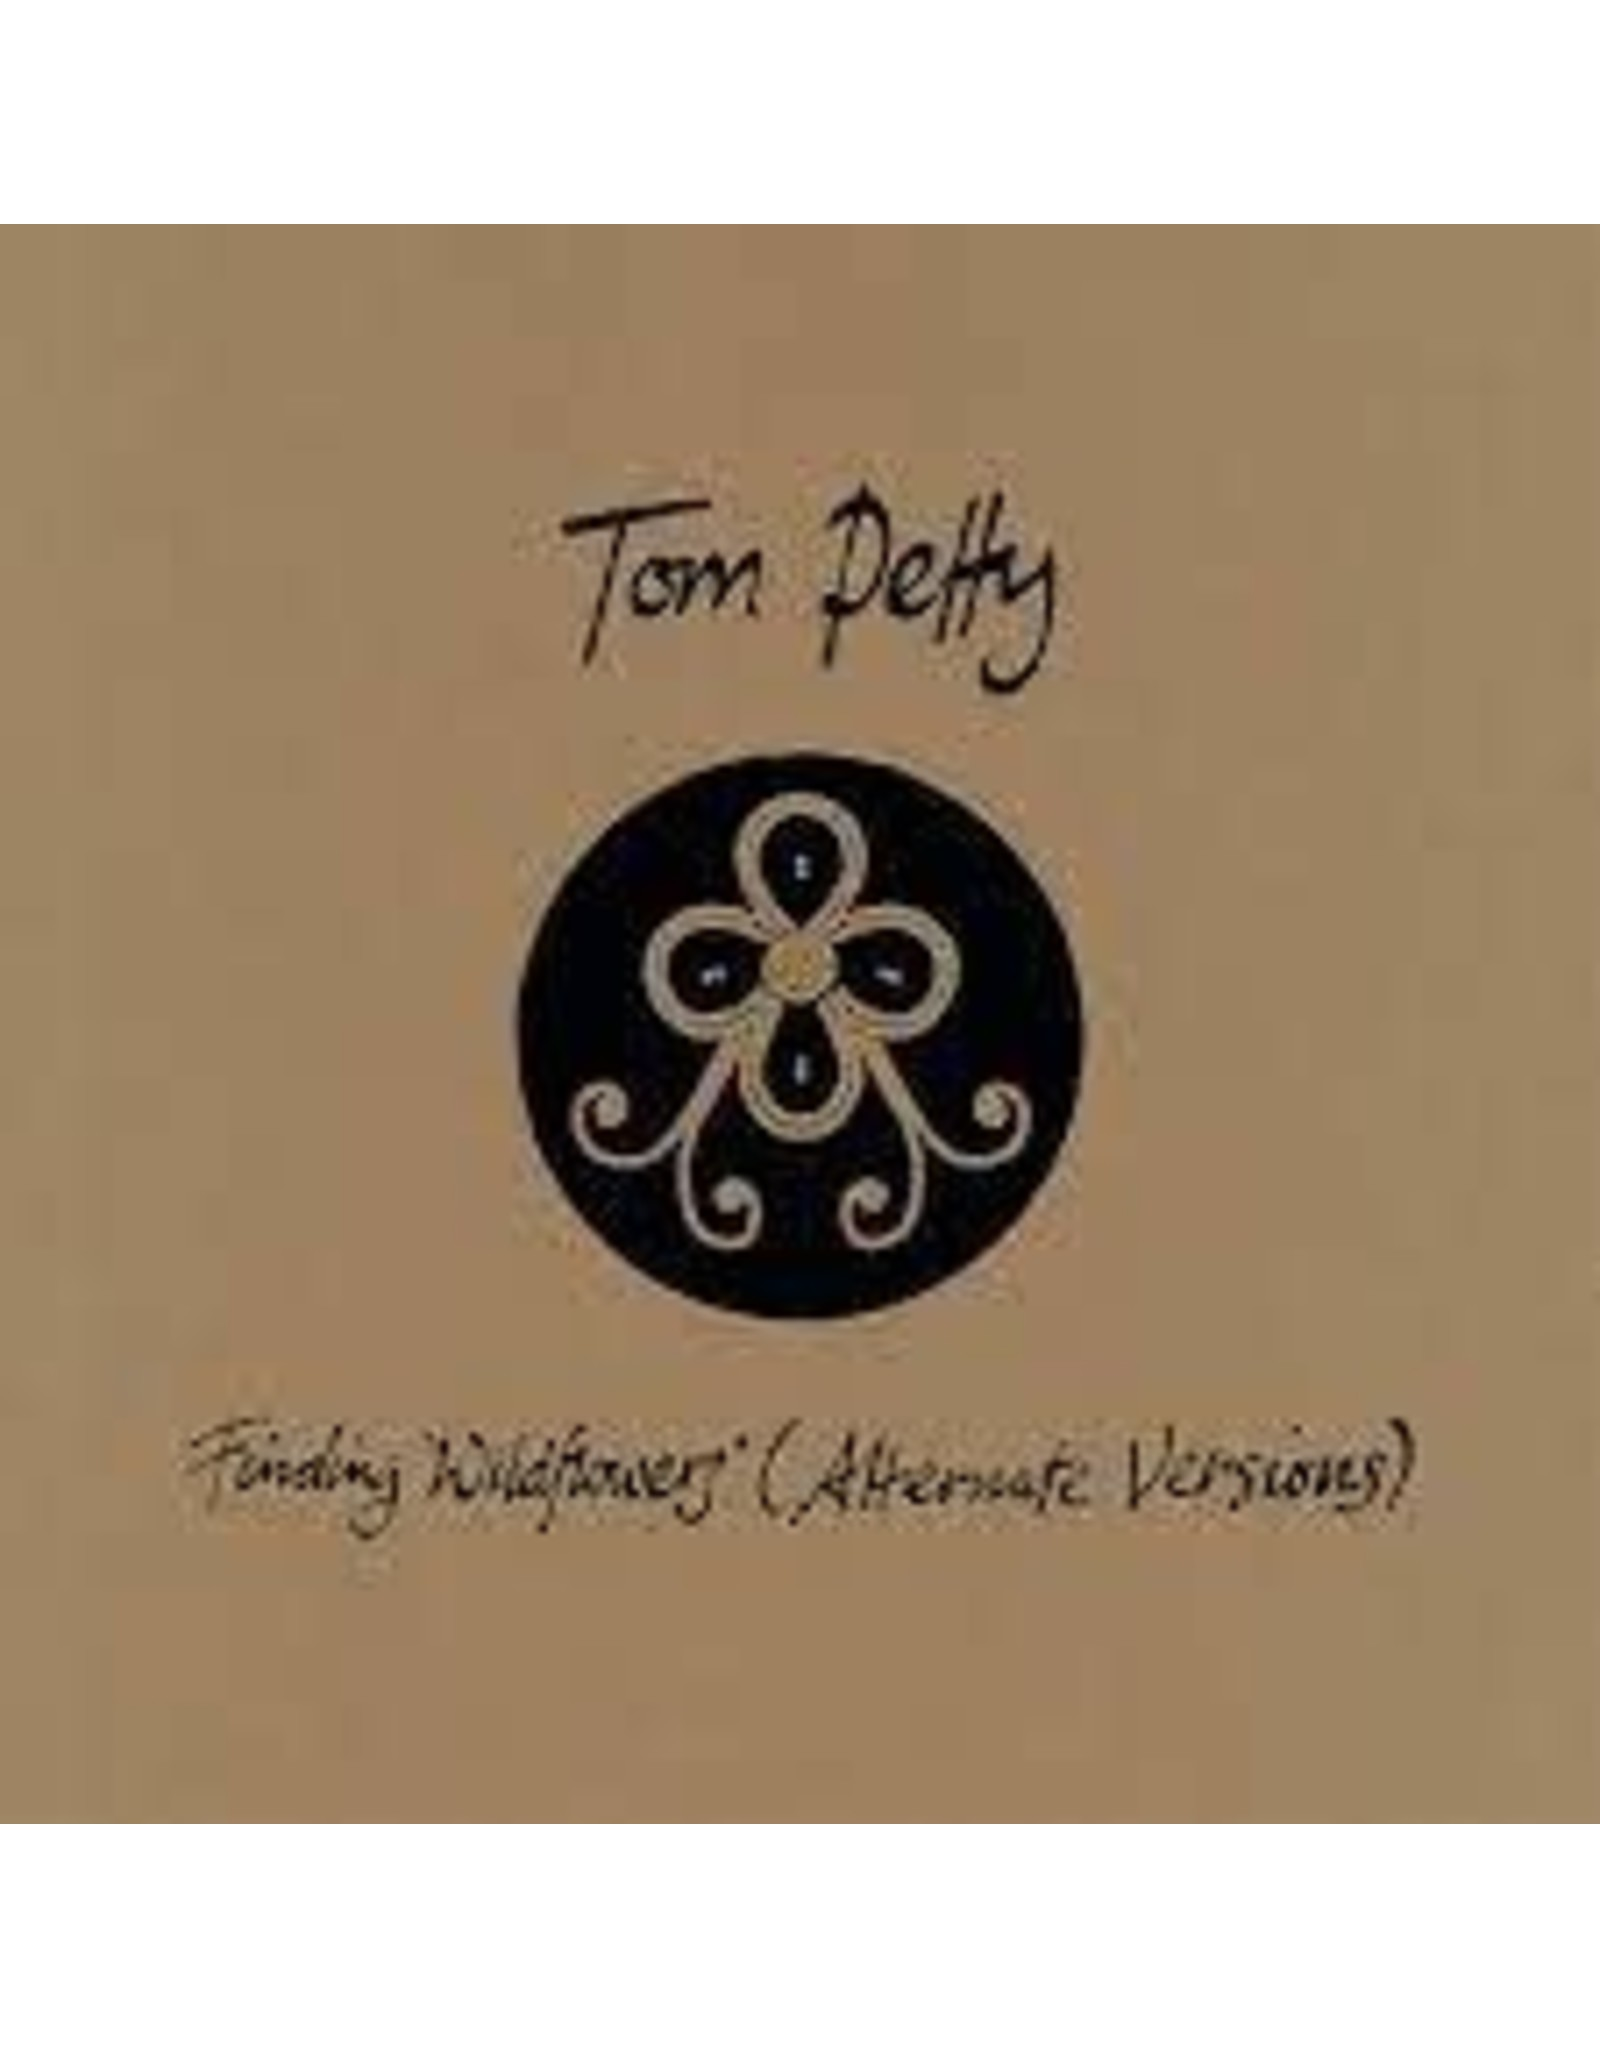 Petty, Tom - Finding Wildflowers 2 LP (Indie Gold Vinyl)